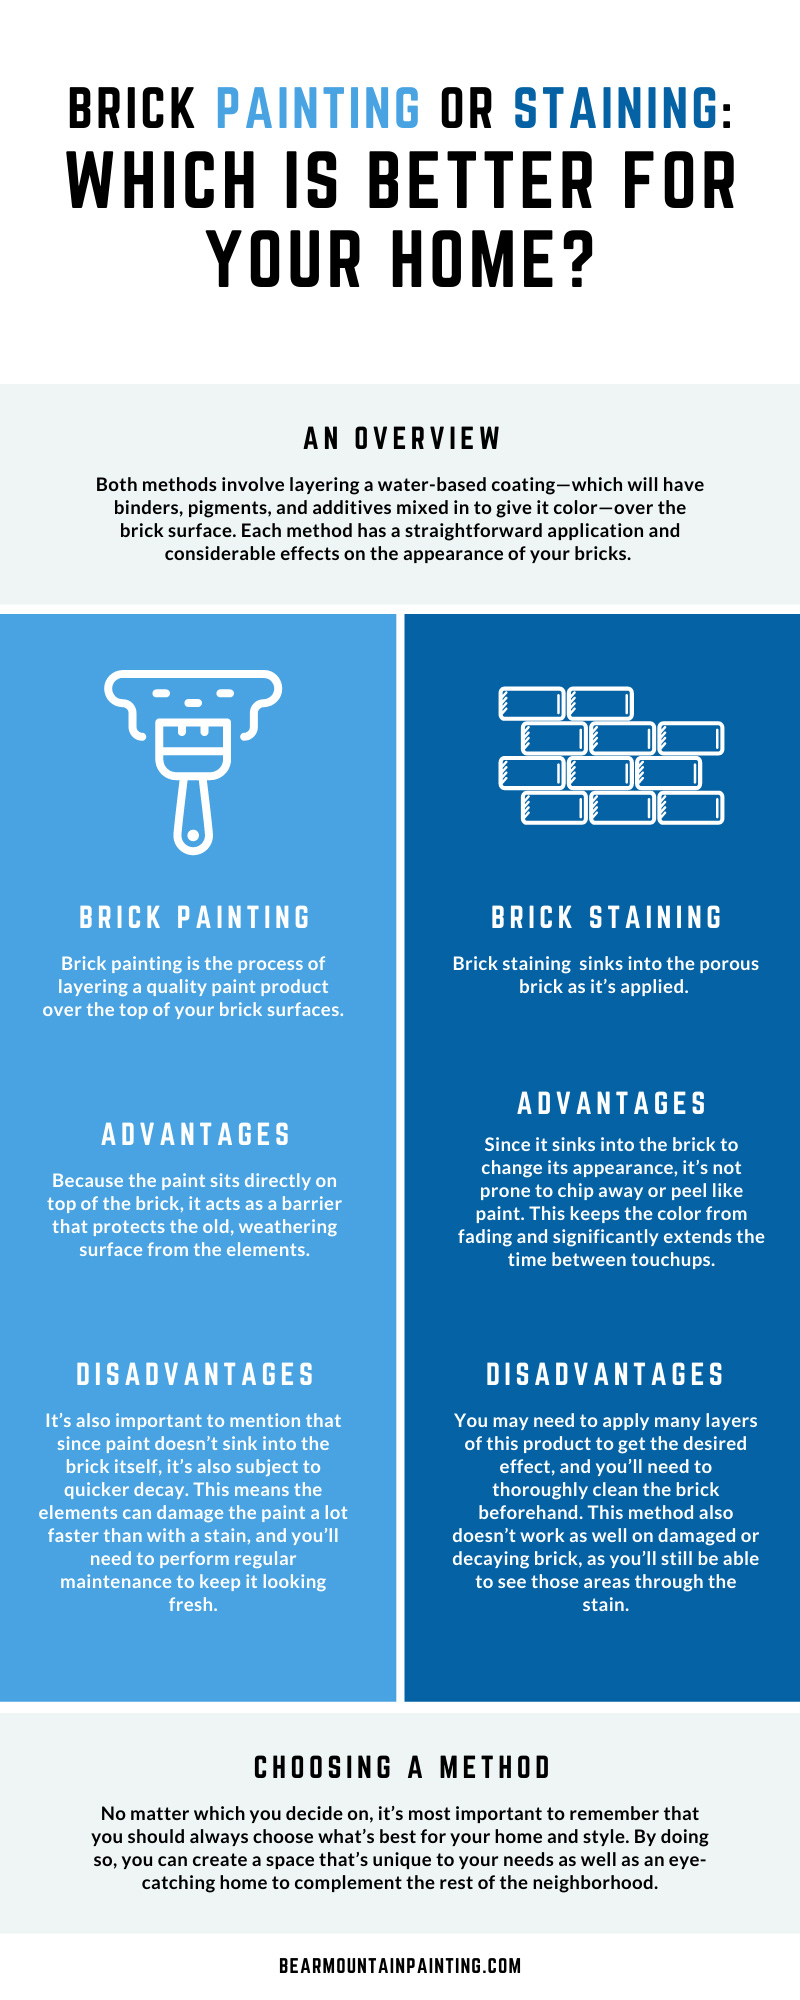 Brick Painting or Staining: Which Is Better